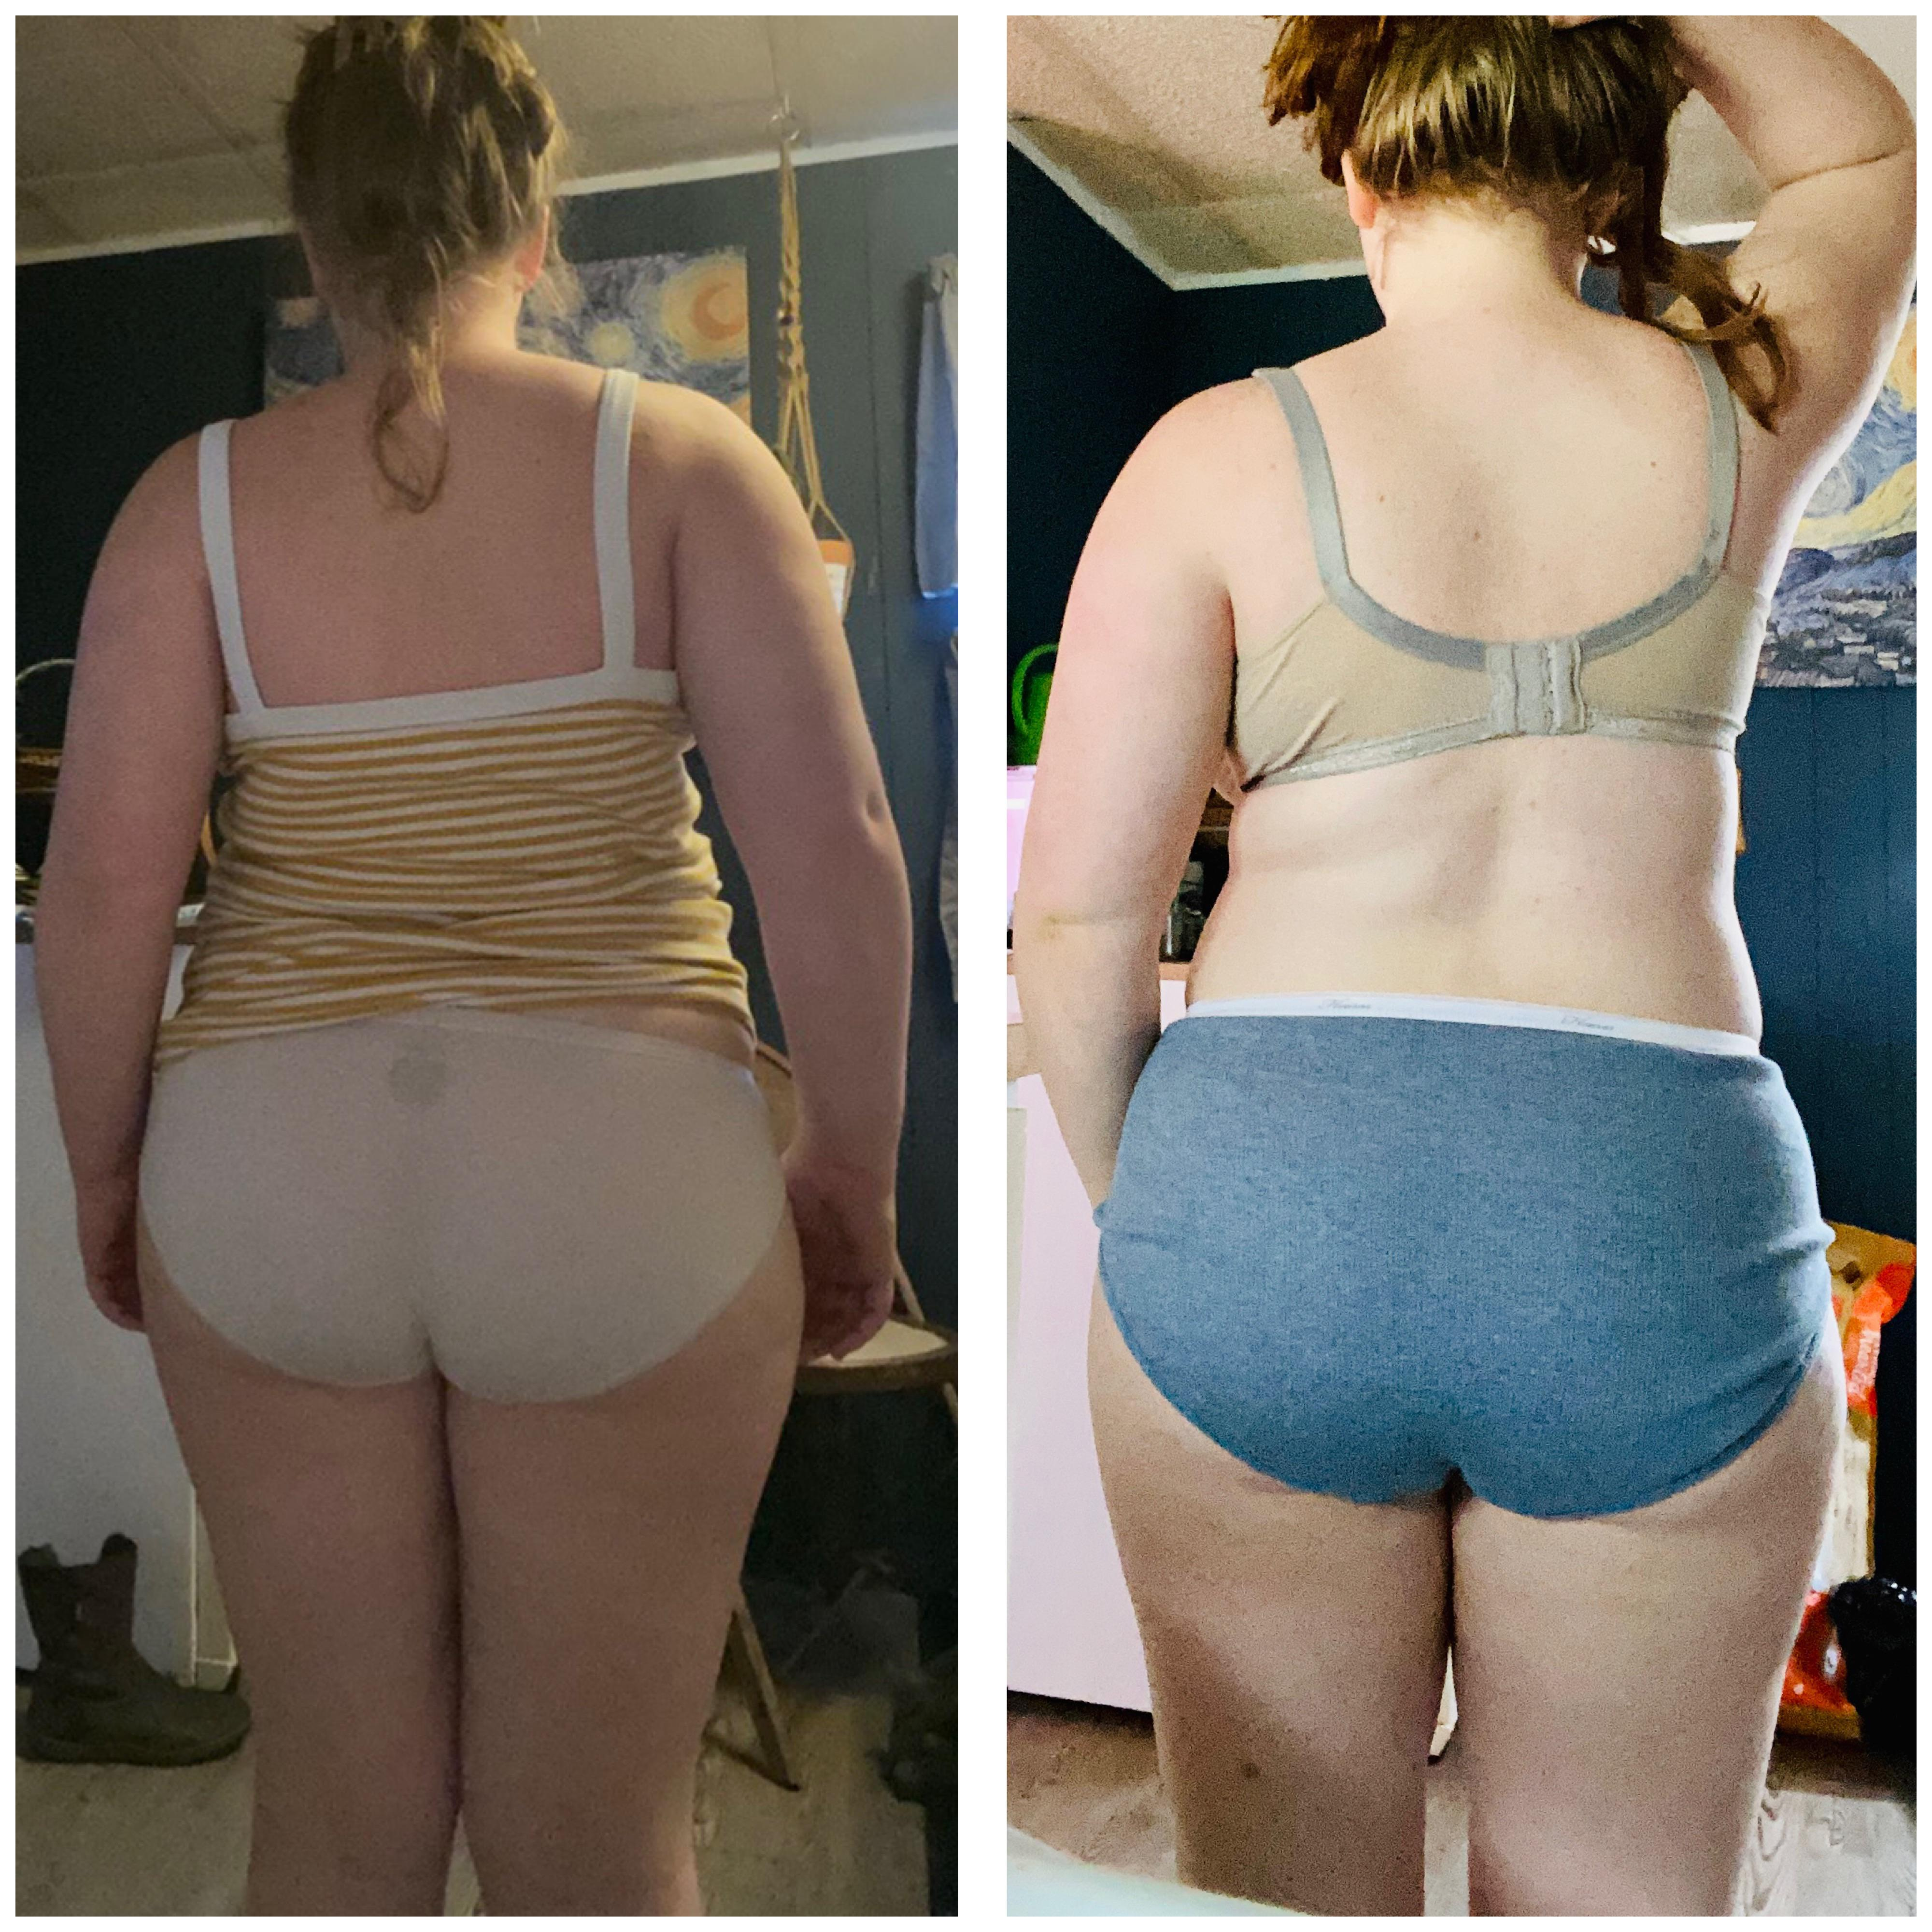 Before and After 12 lbs Weight Loss 5 foot 2 Female 190 lbs to 178 lbs